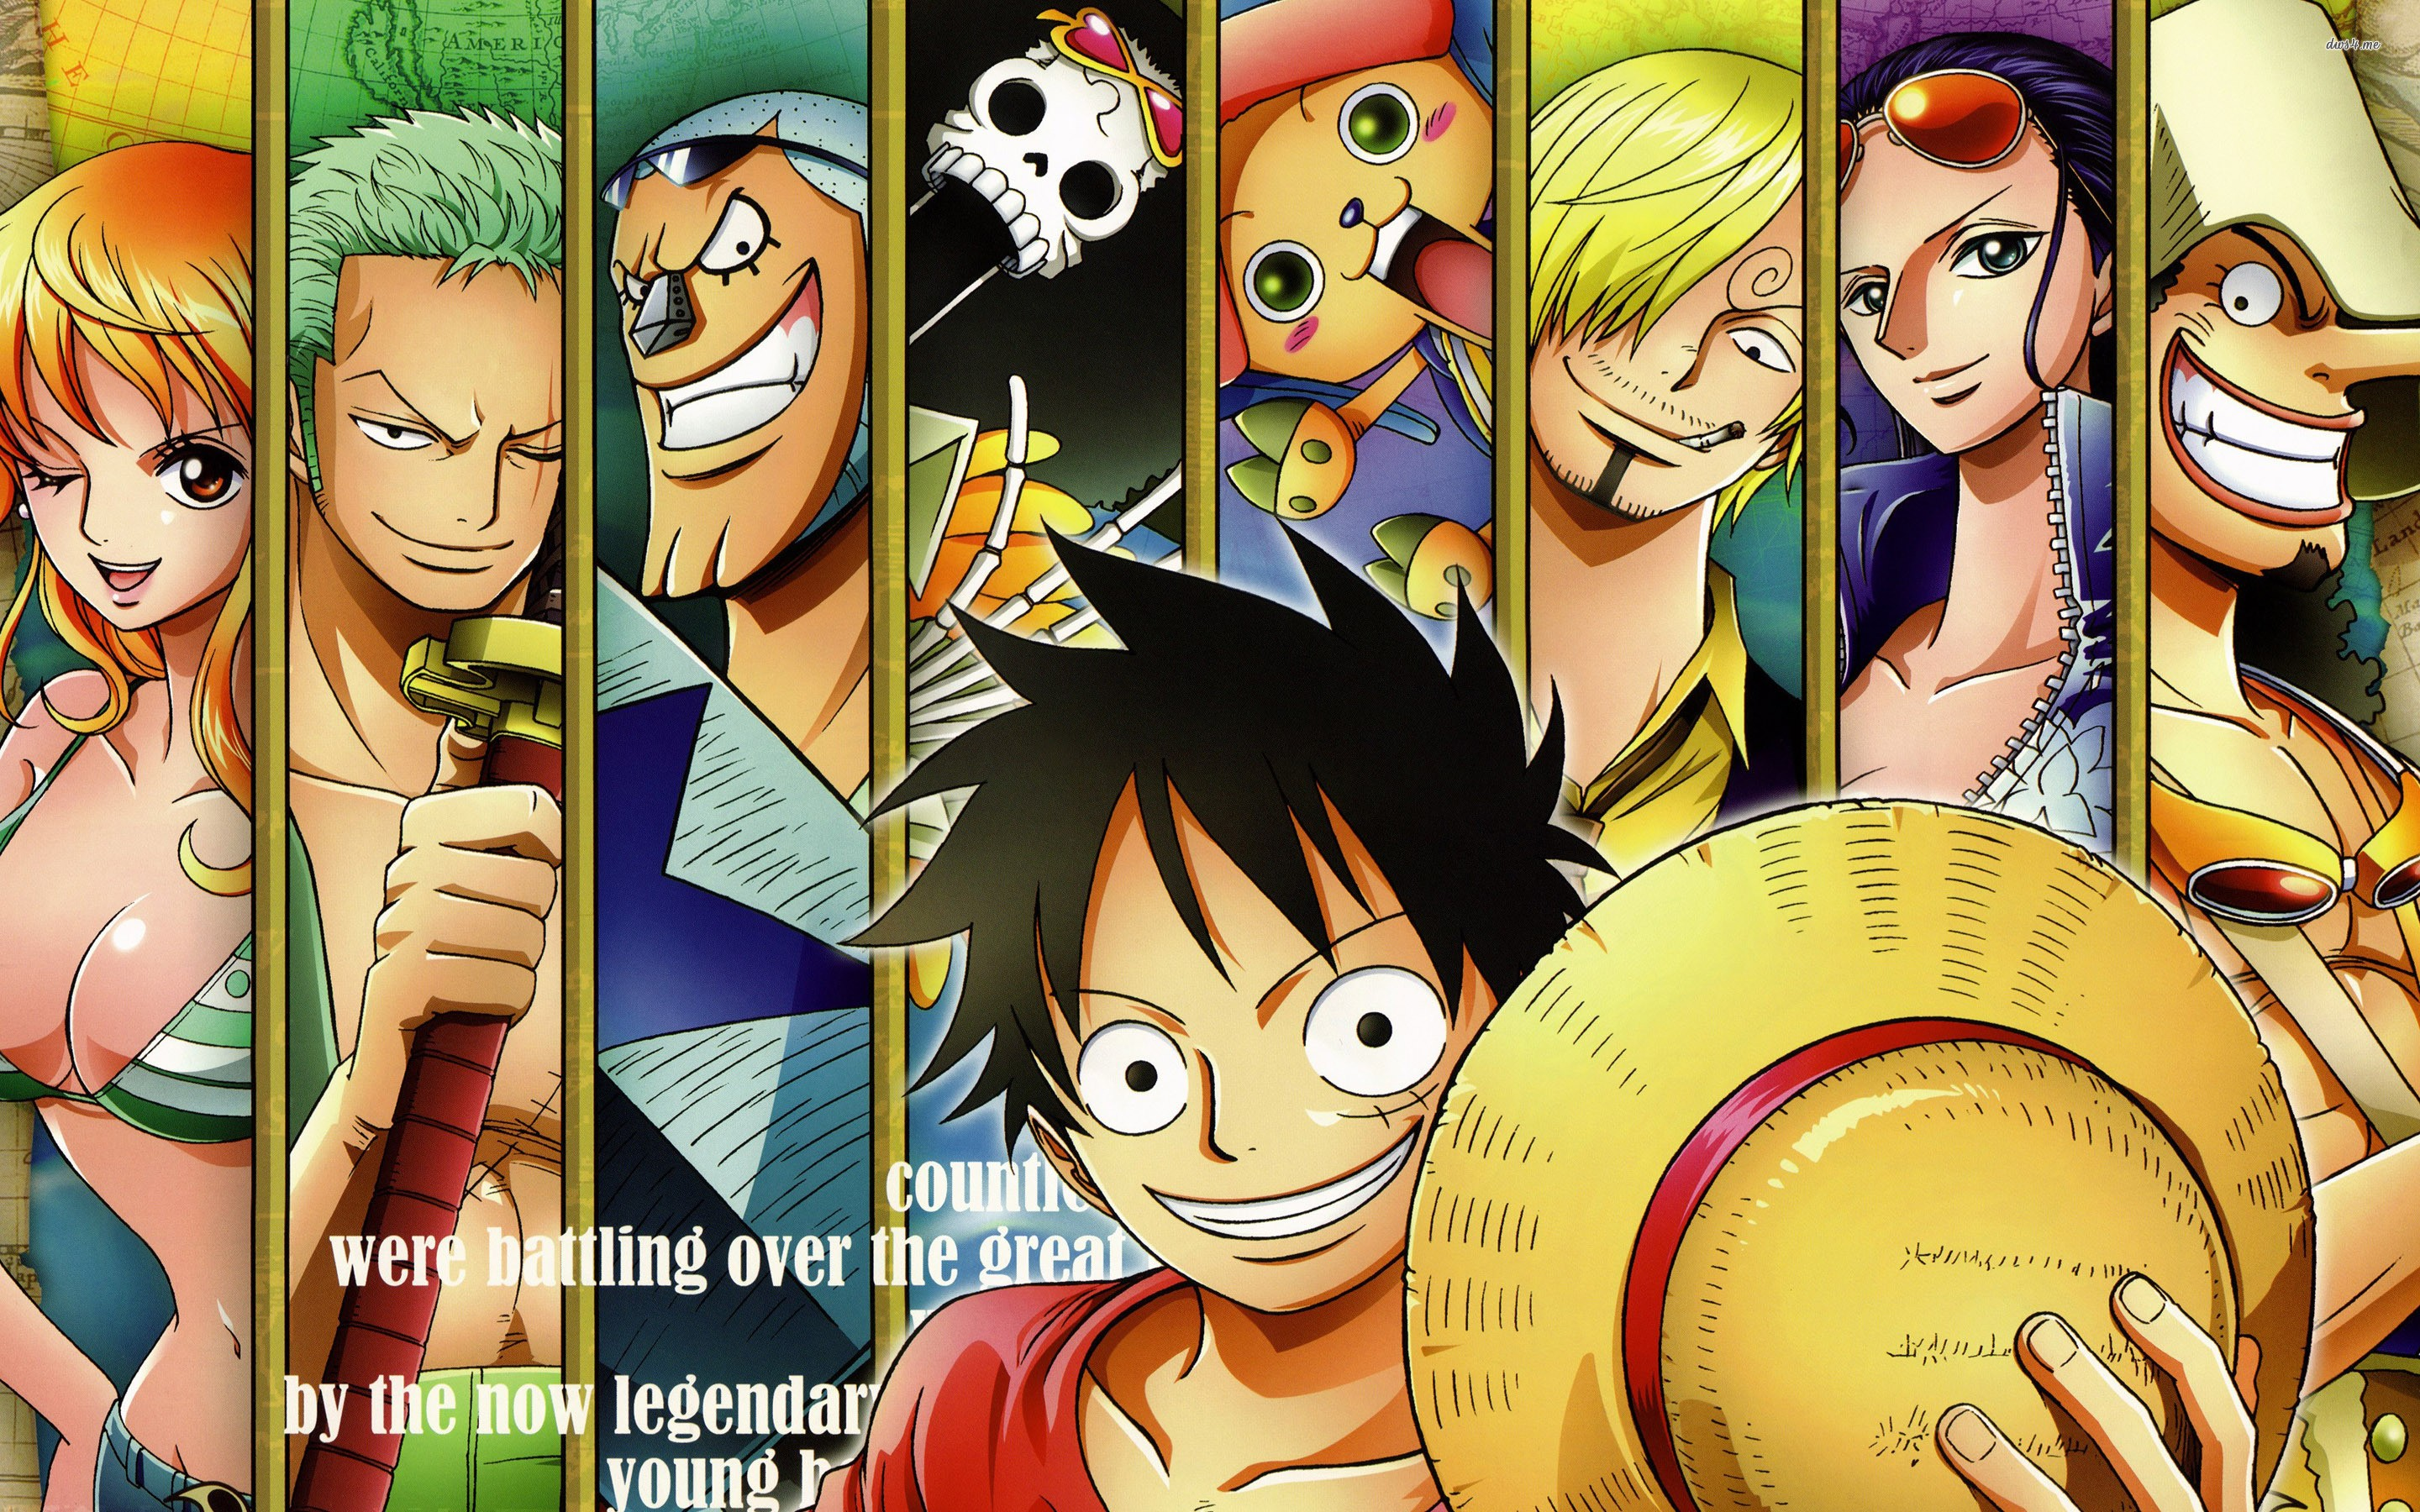 Wallpaper One Piece New World Anime Hd Cool Download - New World One Piece Wallpaper Hd - HD Wallpaper